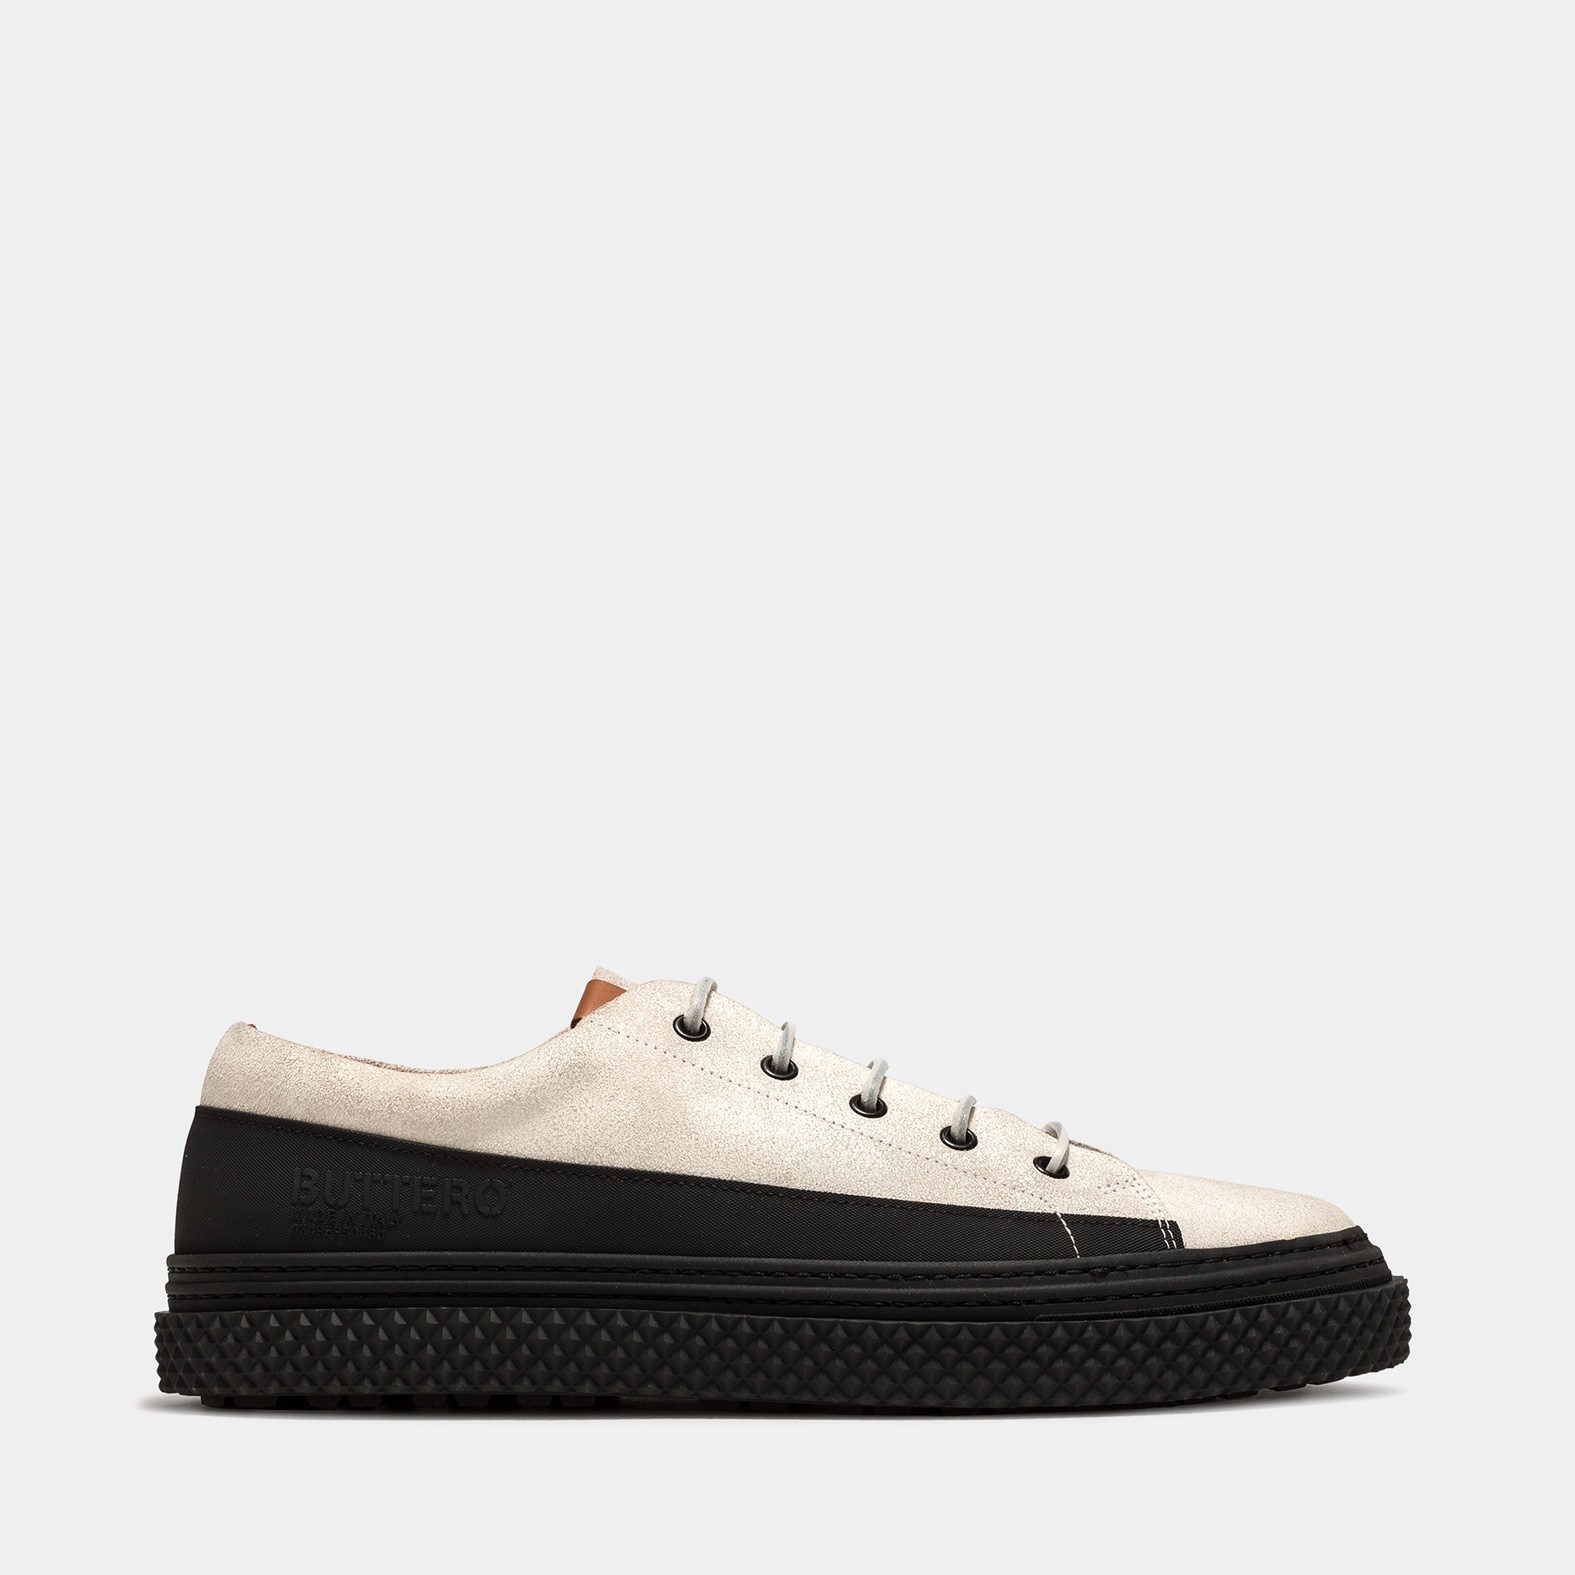 BUTTERO: BRIGATA SNEAKERS IN WHITE CRACKLE EFFECT LEATHER